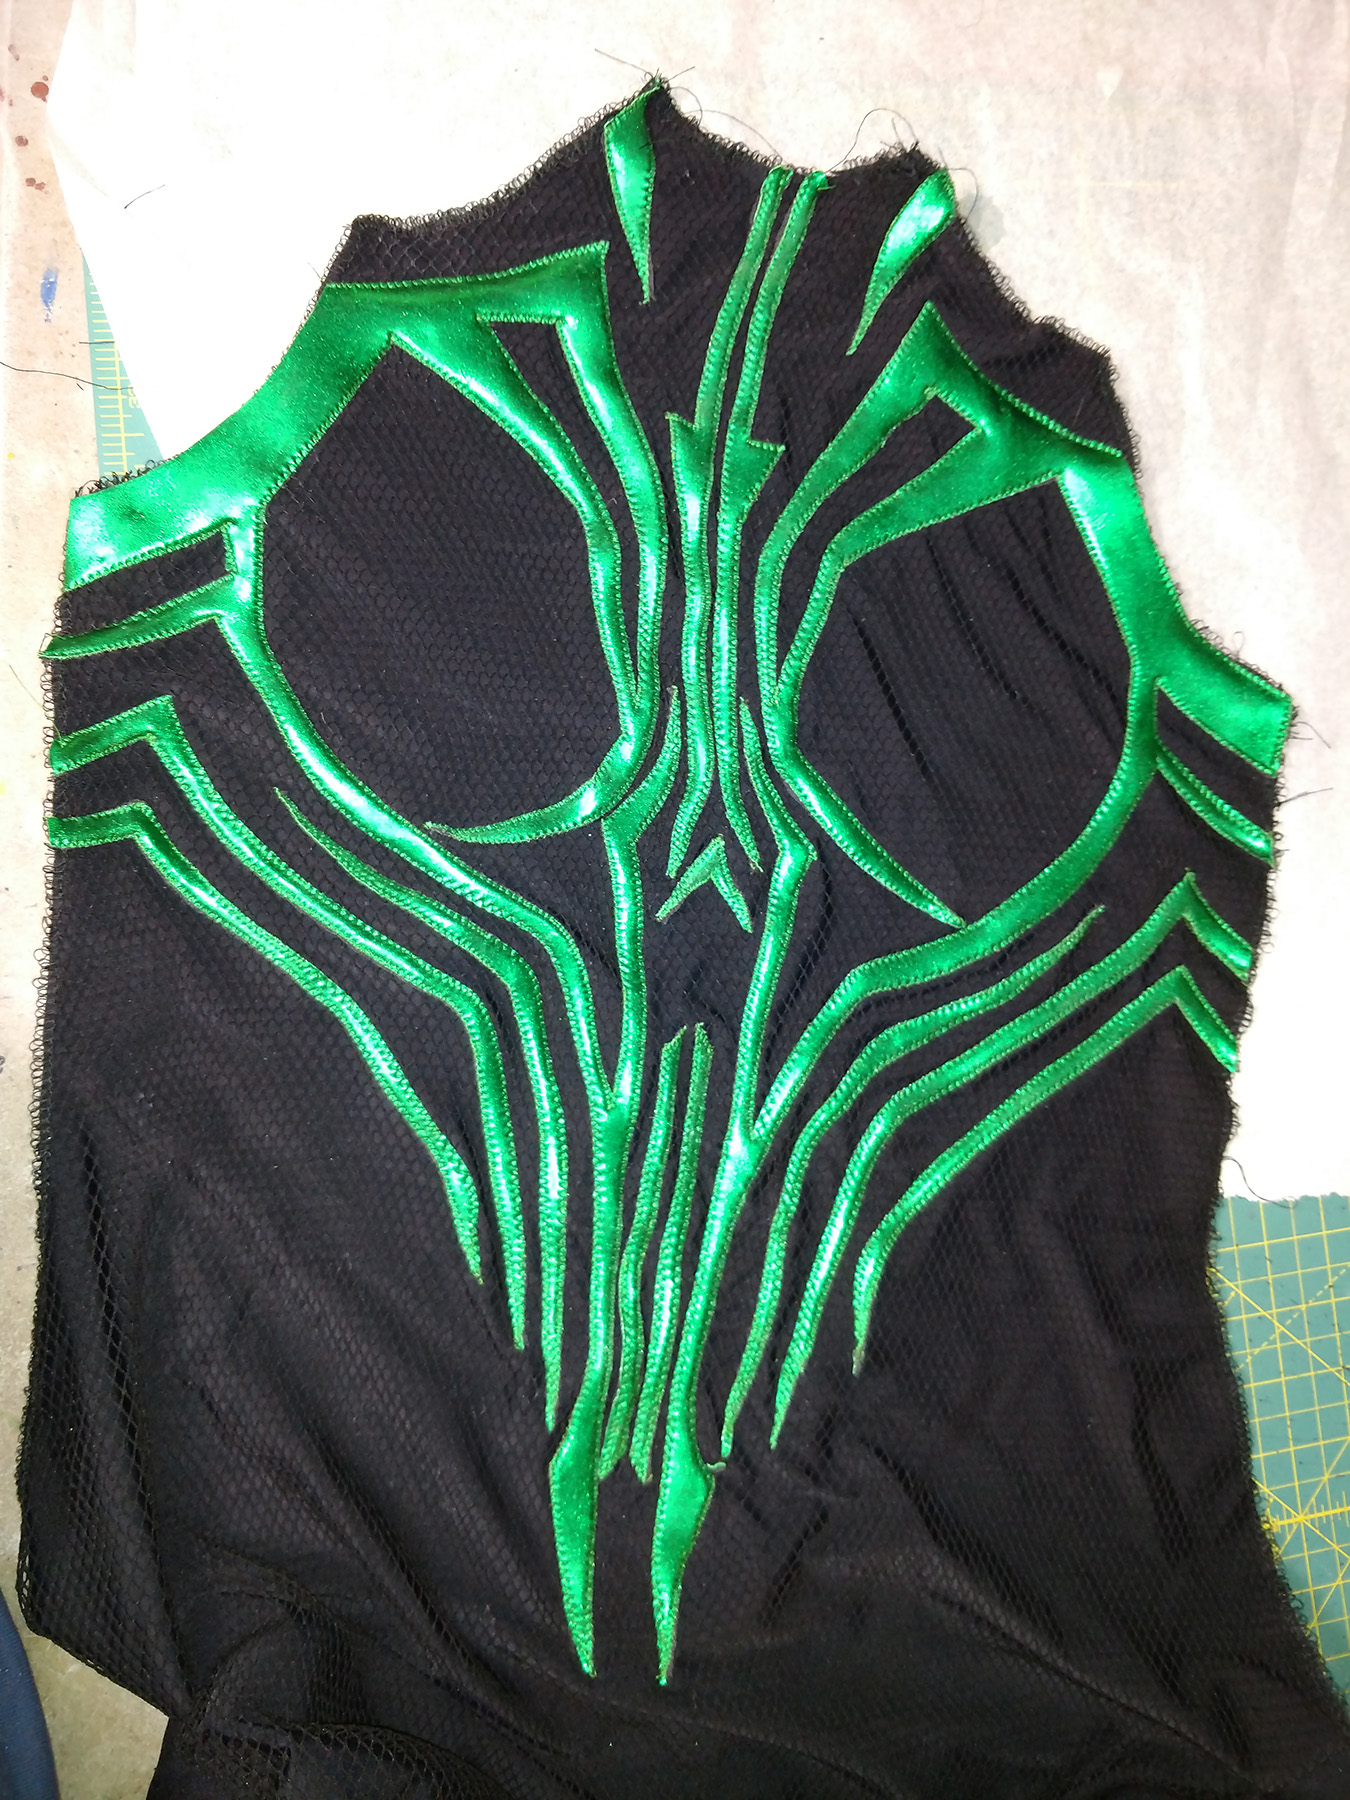 An intricate design of shiny green spandex, stitched down in place on a piece of textured black spandex.